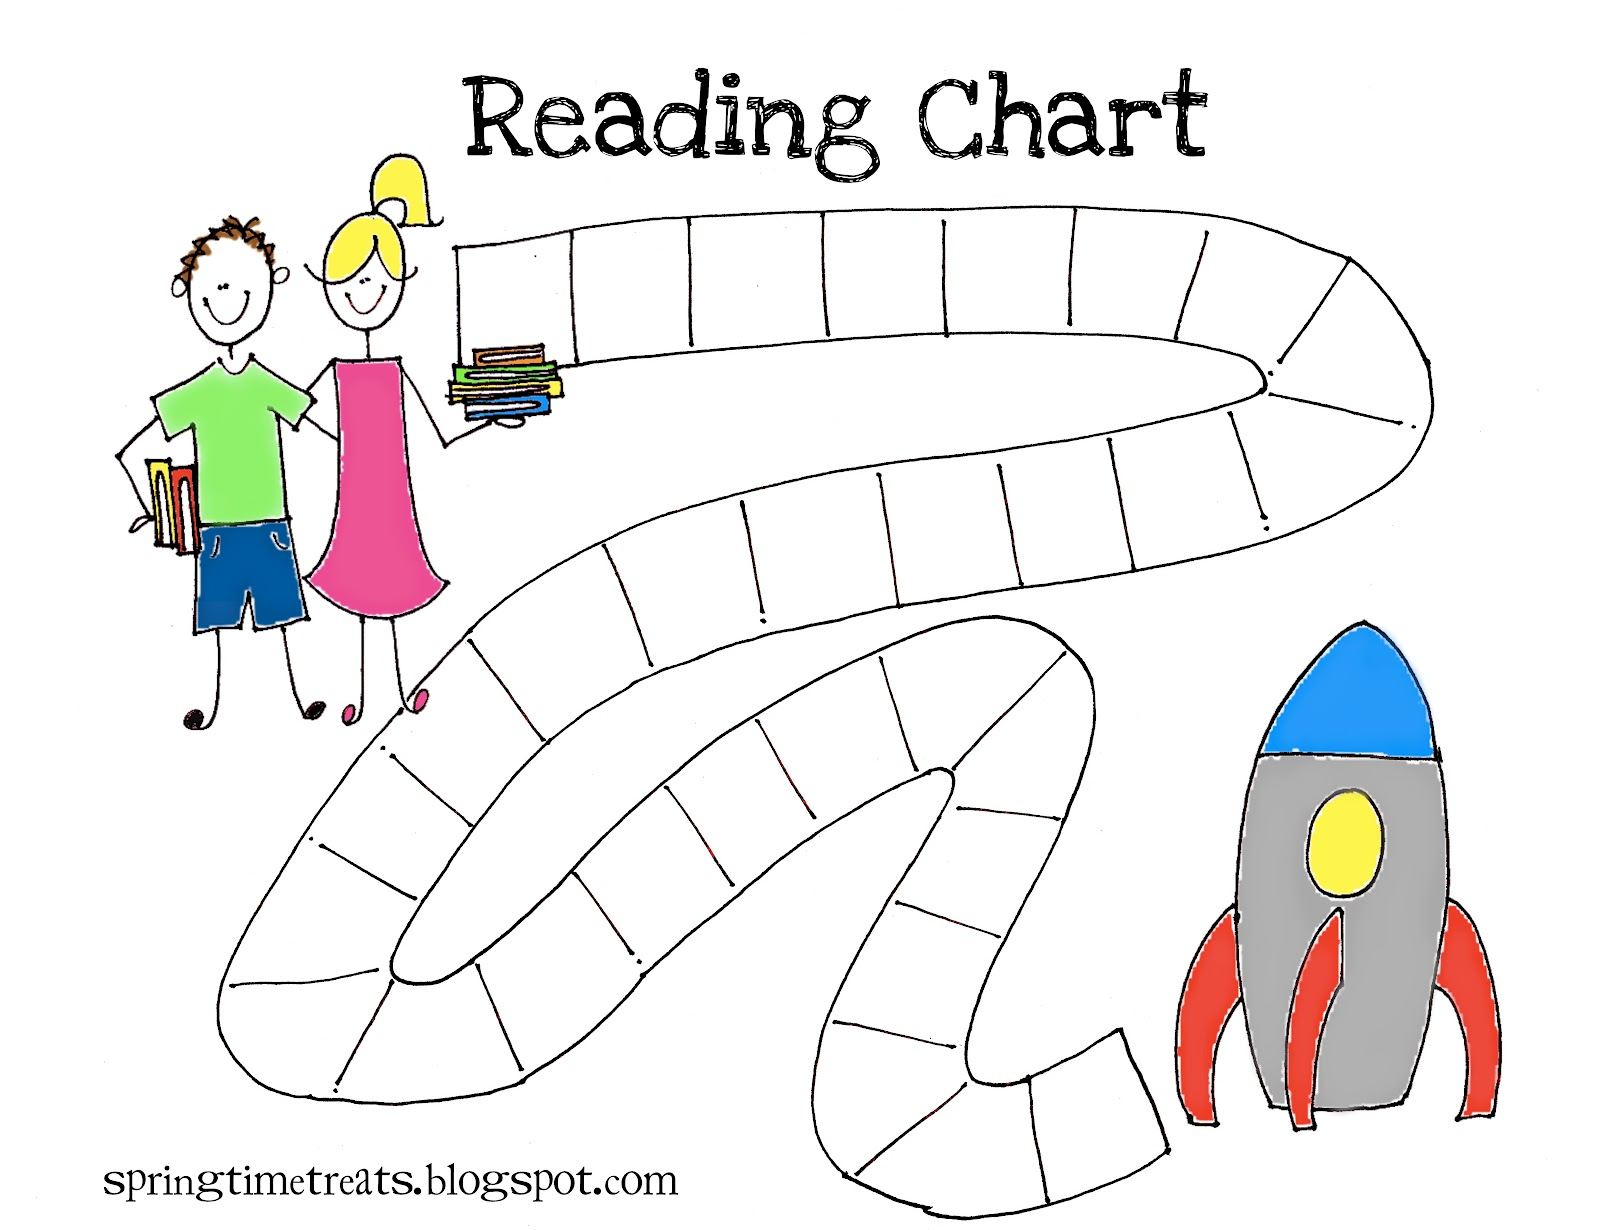 photograph regarding Printable Reading Charts referred to as Looking through Chart - no cost printable